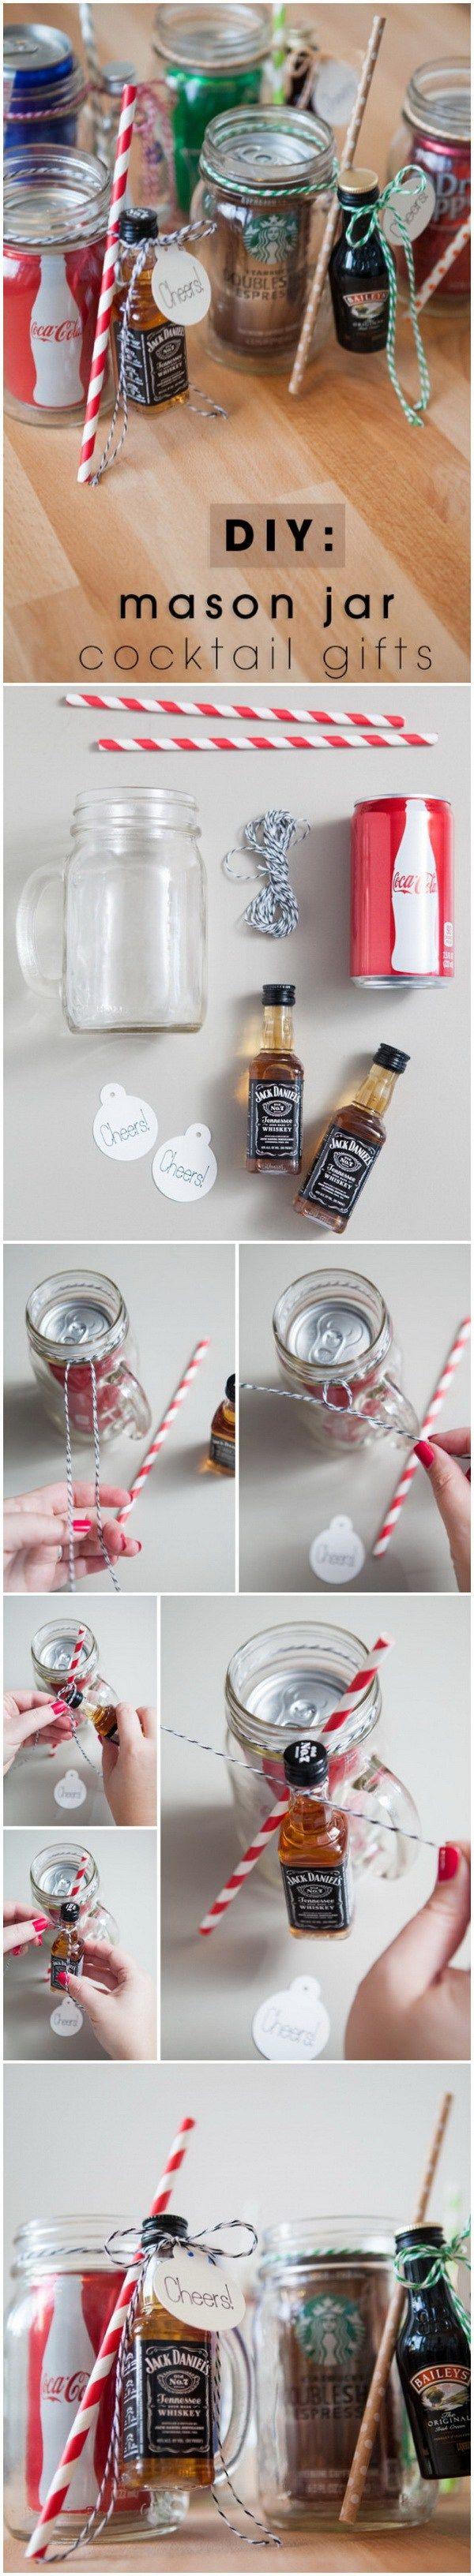 DIY Mason Jar Cocktail Gifts. These mason Jar cocktail gifts are a fun and thoughtful - yet inexpensive gifts for your family and friends! They can be truly savored by the recipient!